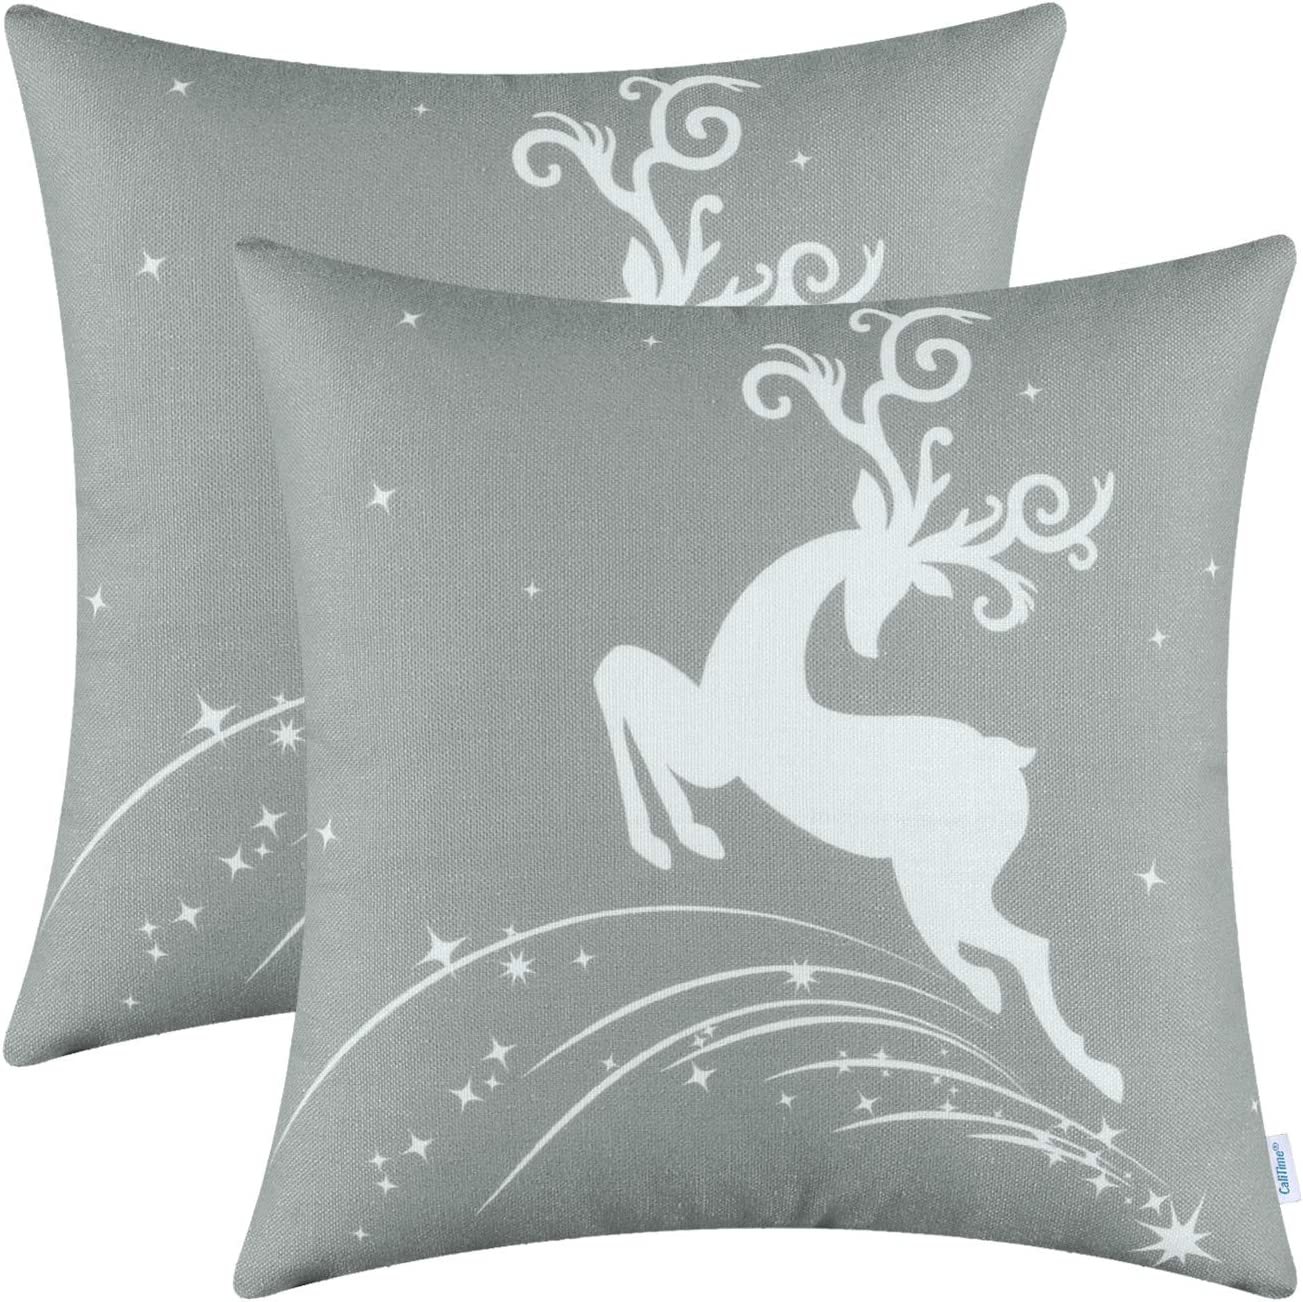 CaliTime Pack of 2 Soft Canvas Throw Pillow Covers Cases for Couch Sofa Home Decoration Christmas Holiday Reindeer Jump with Stars Print 18 X 18 Inches Medium Grey